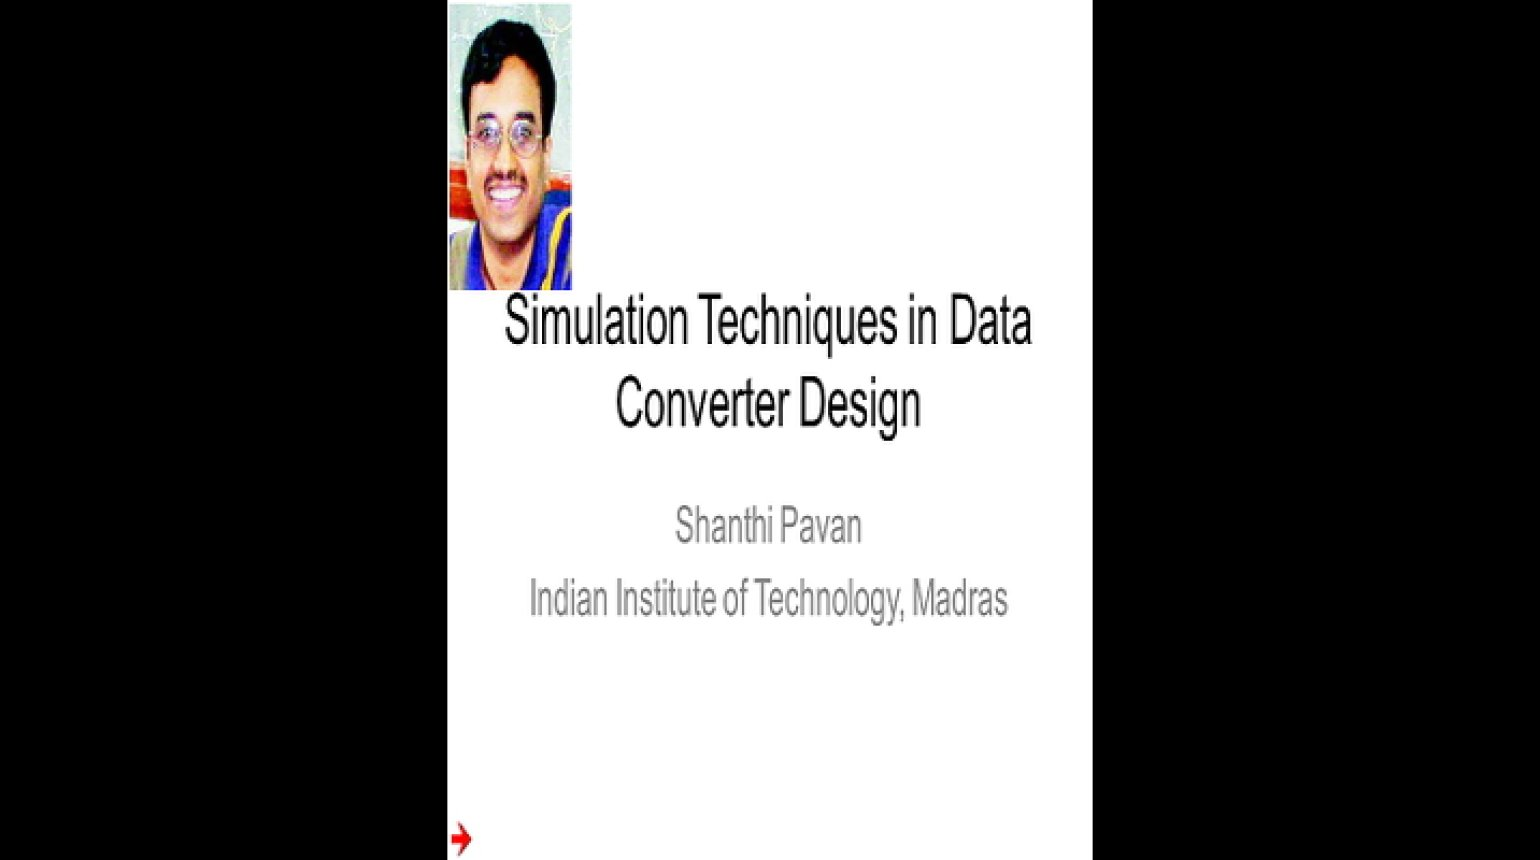 Simulation Techniques for Data Converter Design Video